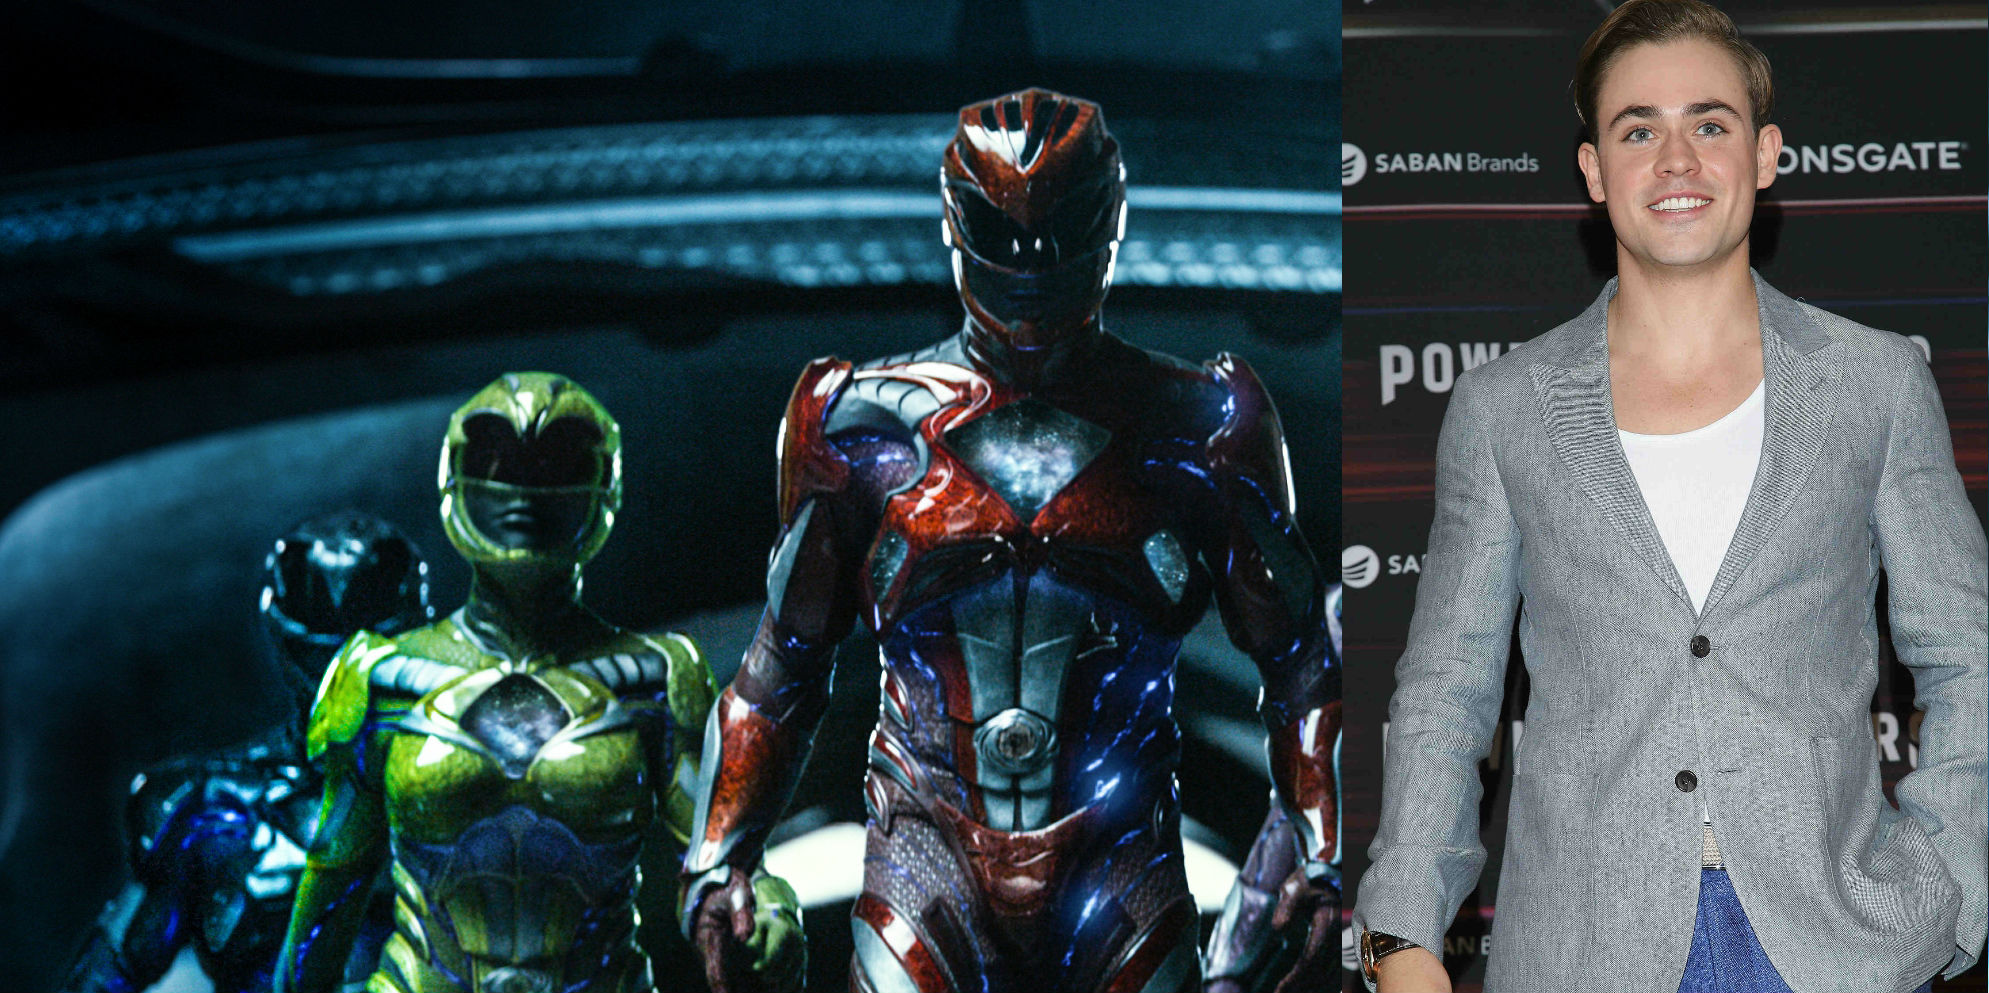 Meet the new (Aussie!) Power Ranger, Dacre Montgomery